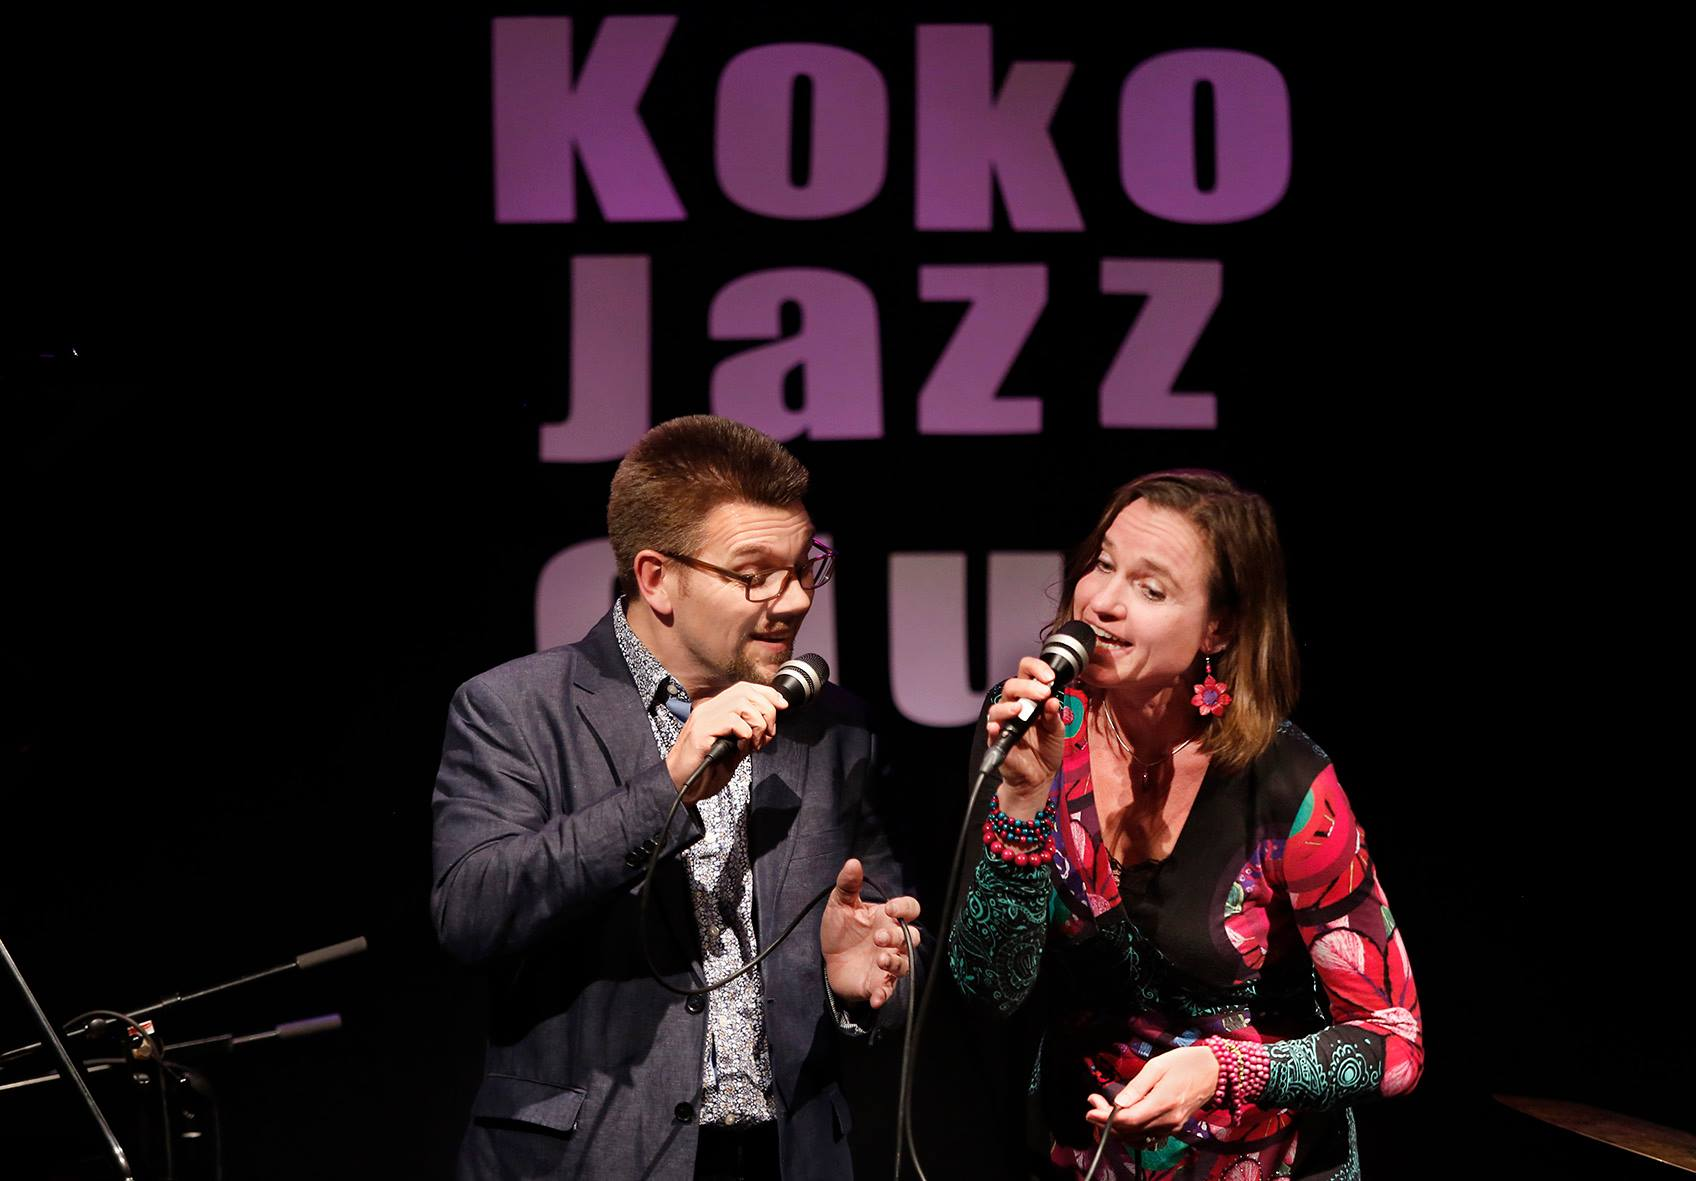 Koko Jazz Club Mirja